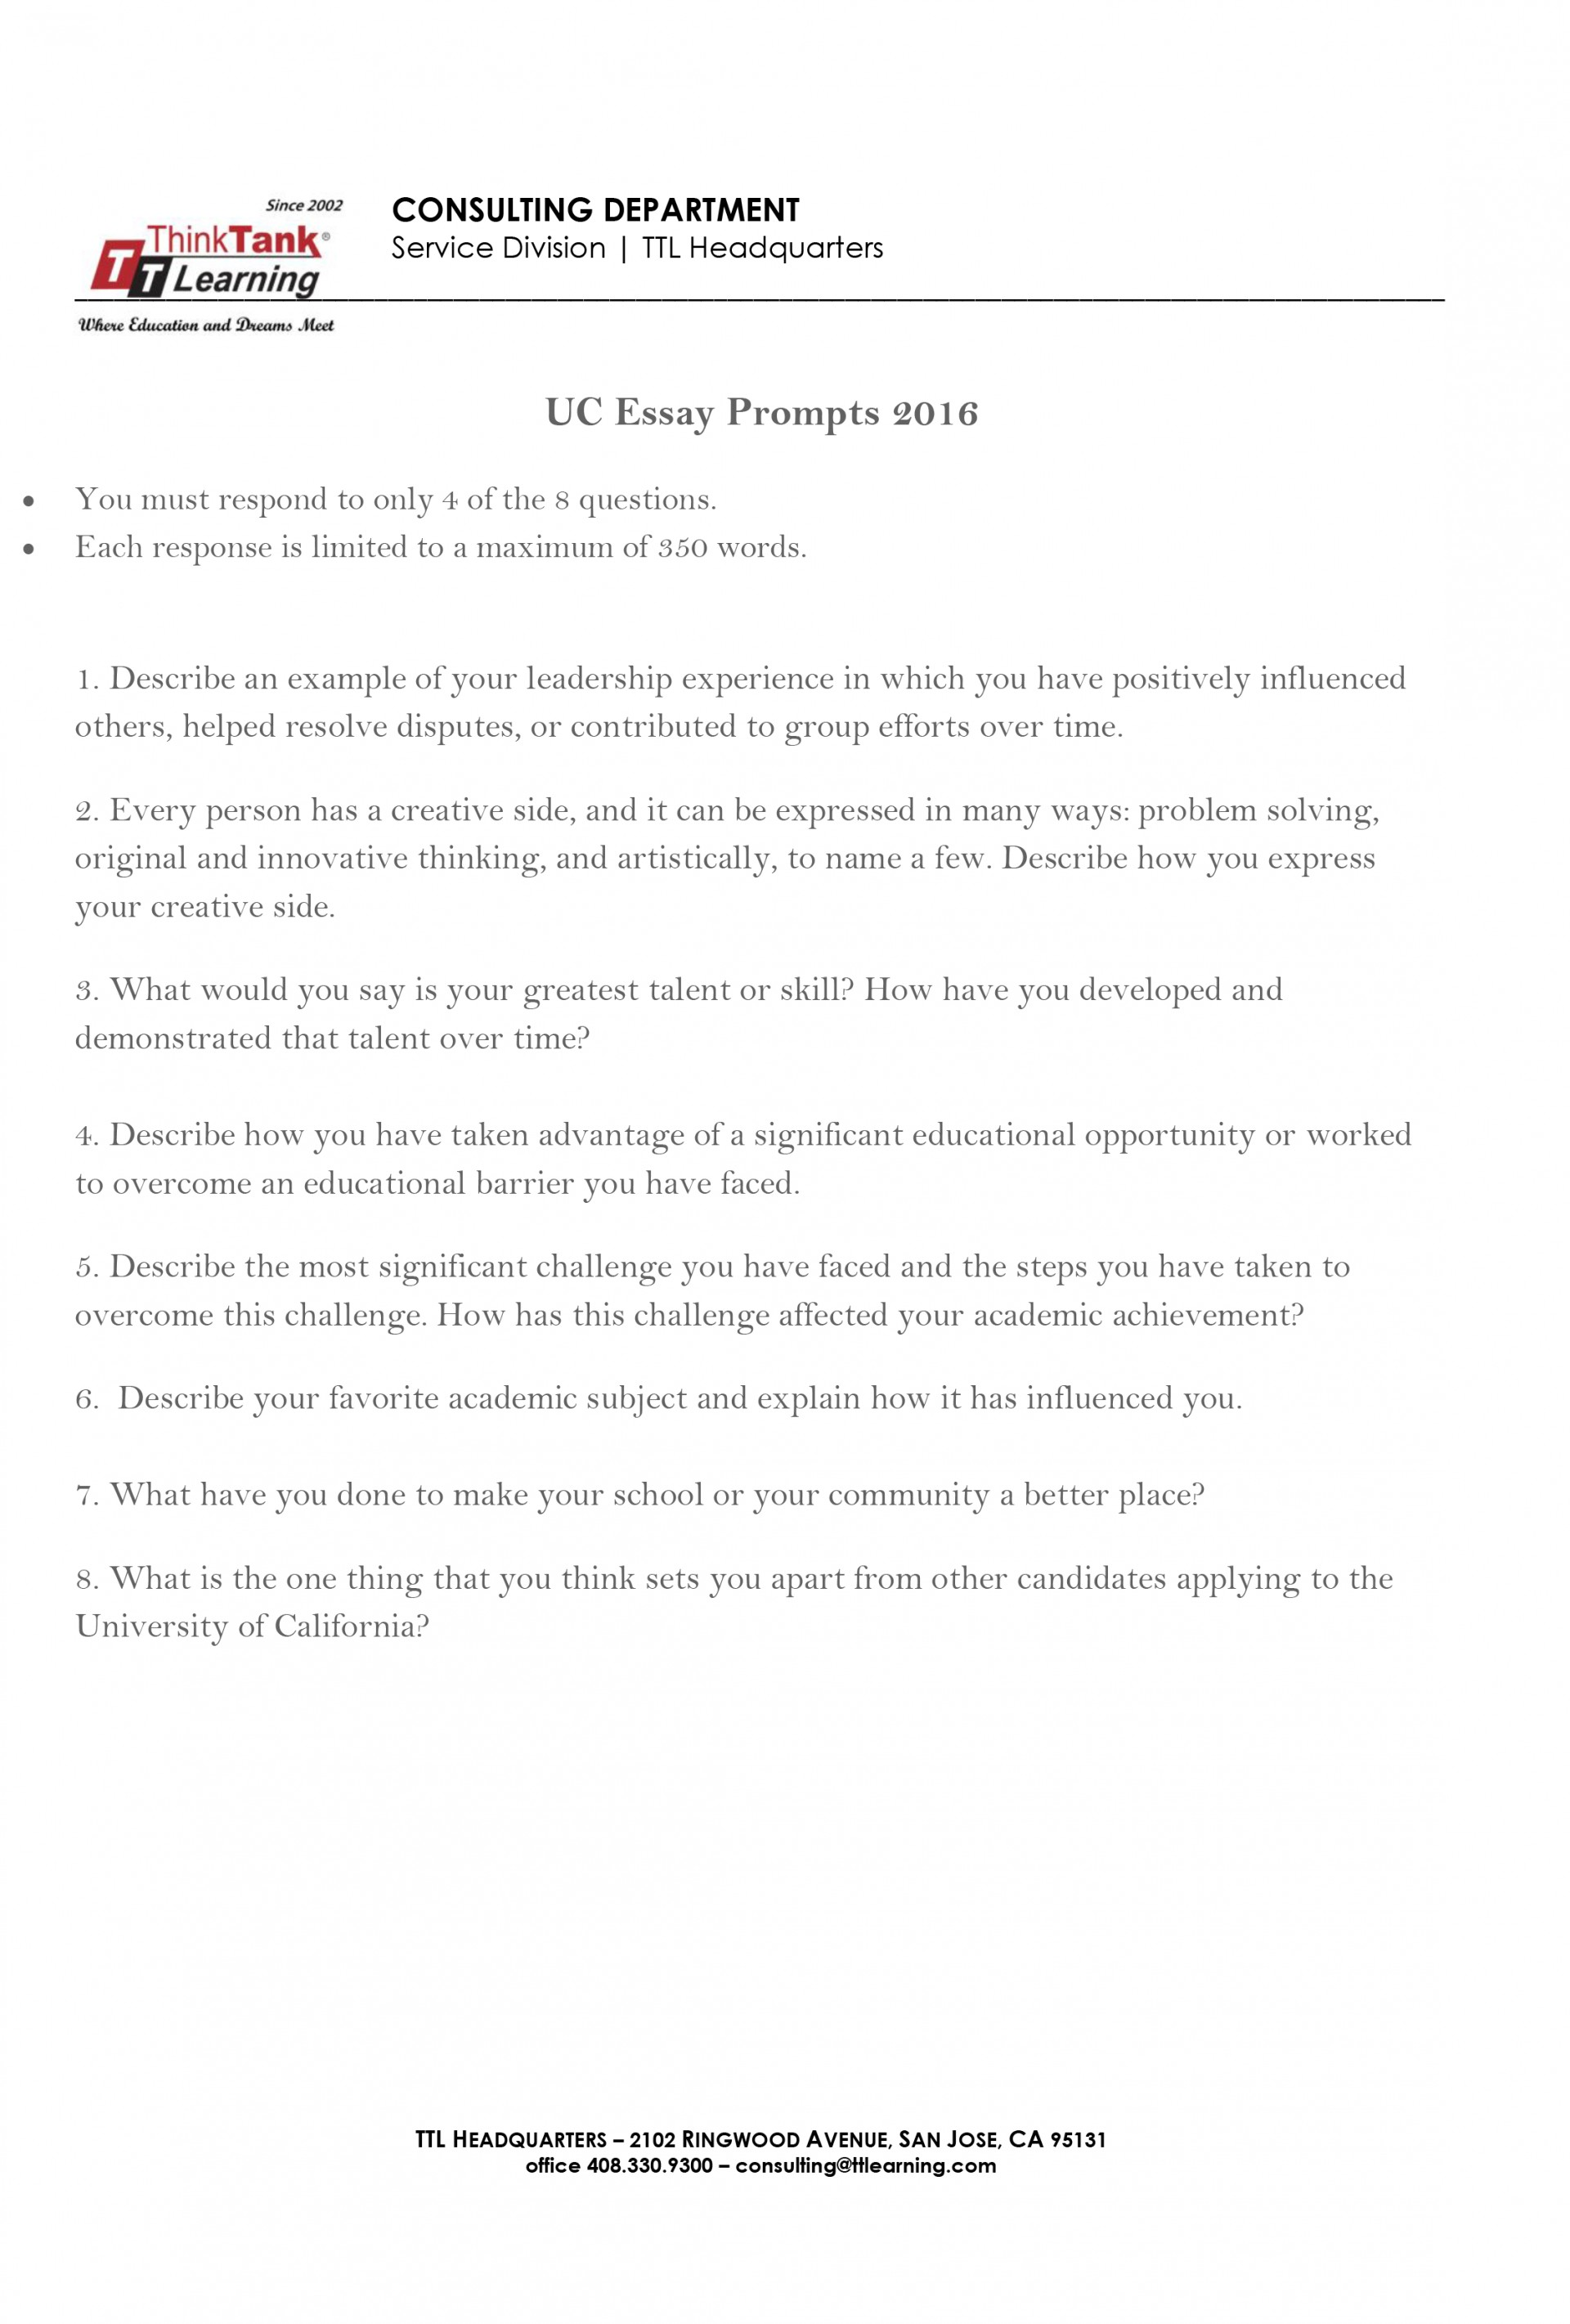 014 Uc Essay 2016 2 Example Application Imposing Prompts 2016-17 Examples Prompt 1 Berkeley 2017 1920